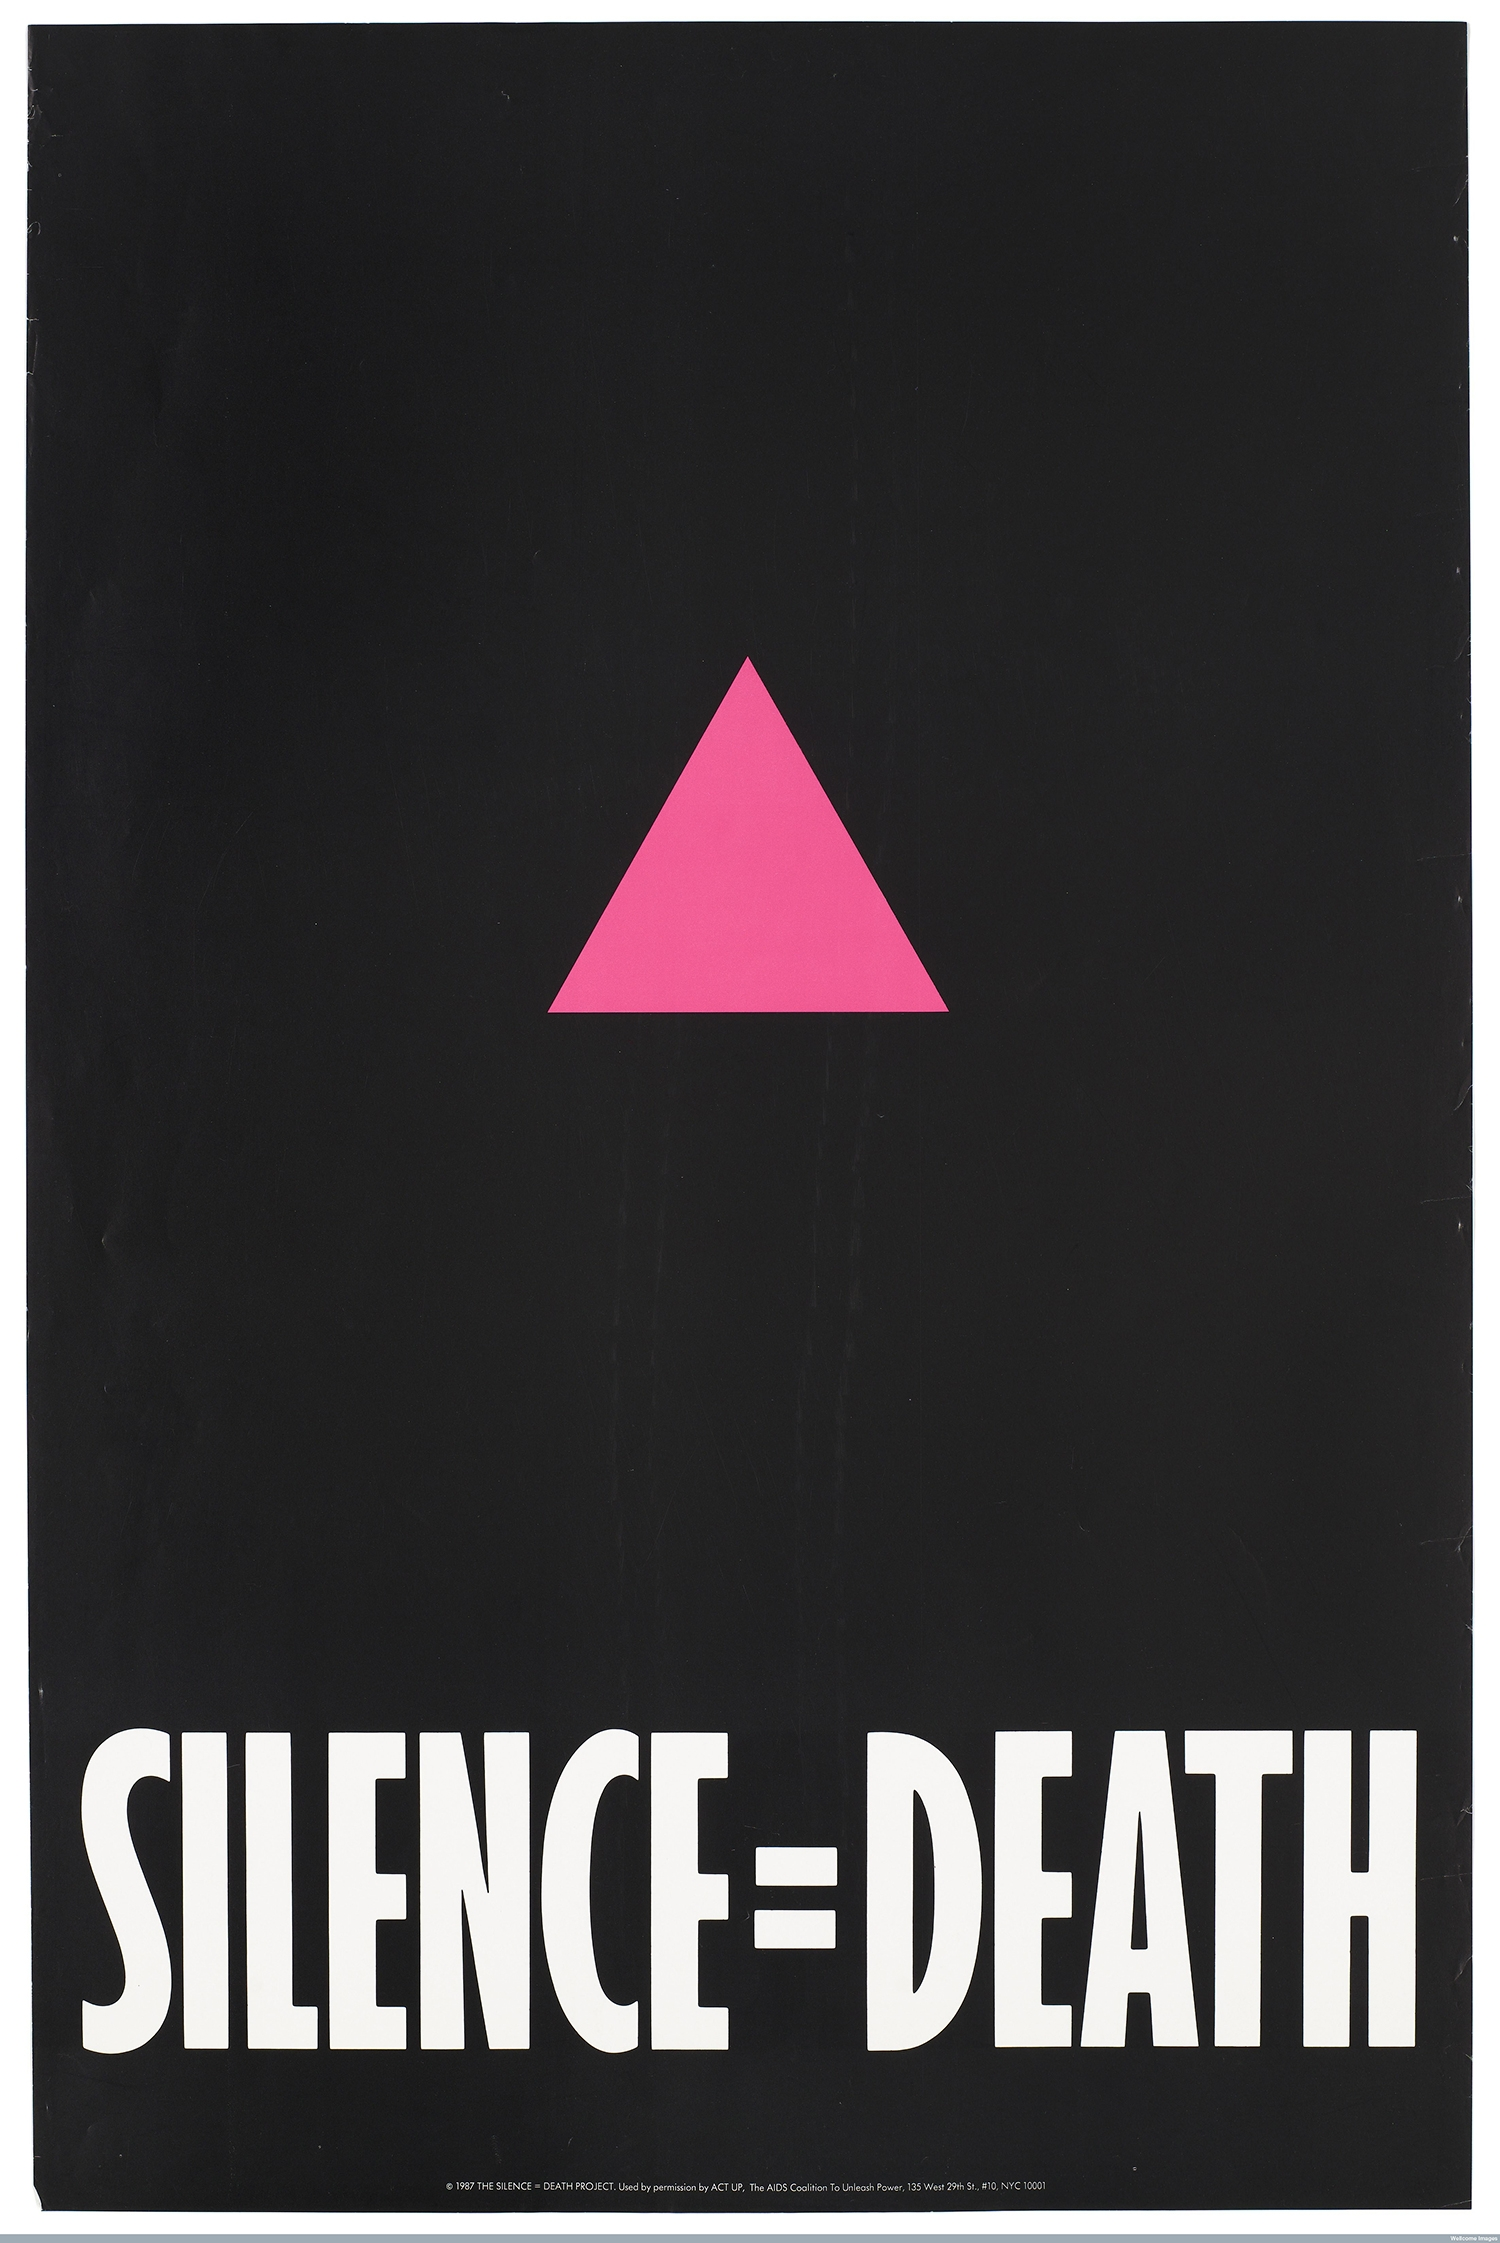 wellcome-a-pink-triangle-against-a-black-backdrop-with-the-words-silence_death-an-advertisement-for-the-silence-_-death-project–1987